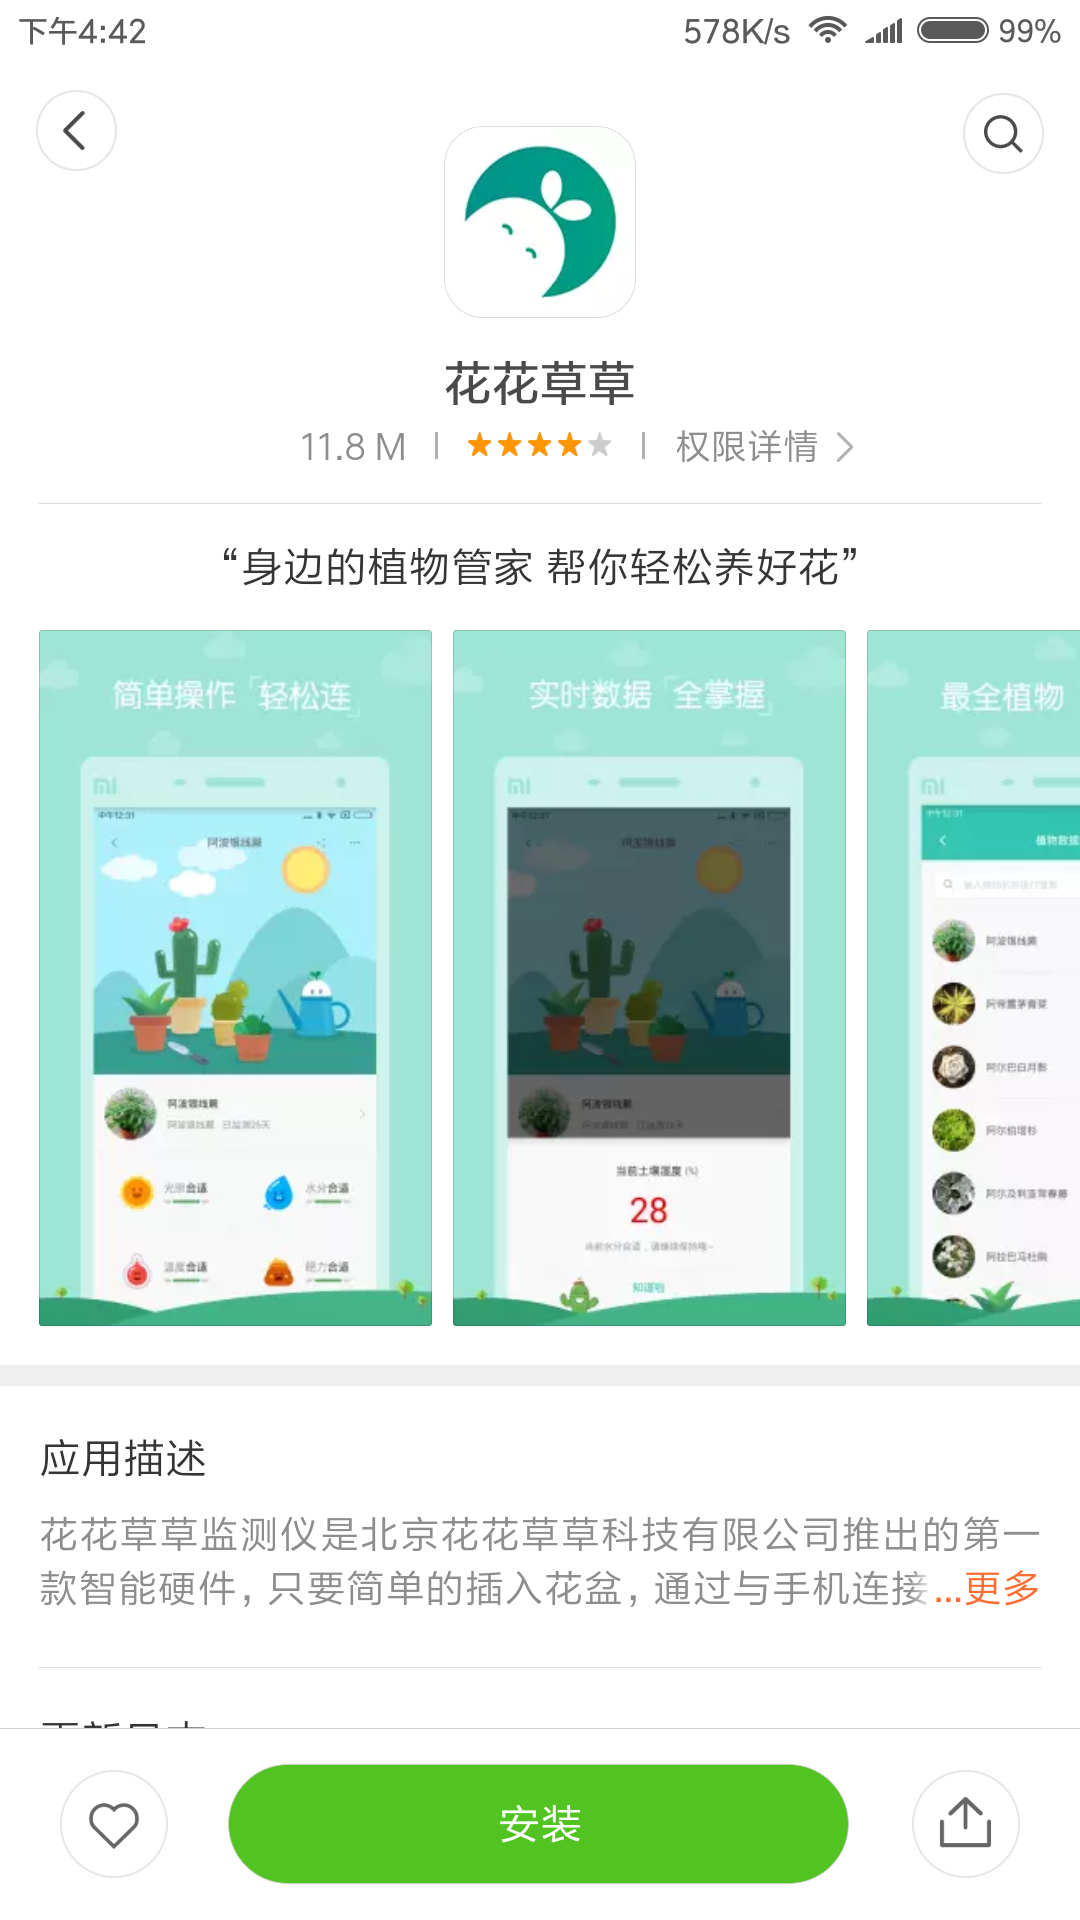 Screenshot_2017-03-02-16-42-34-777_com.xiaomi.mar.png